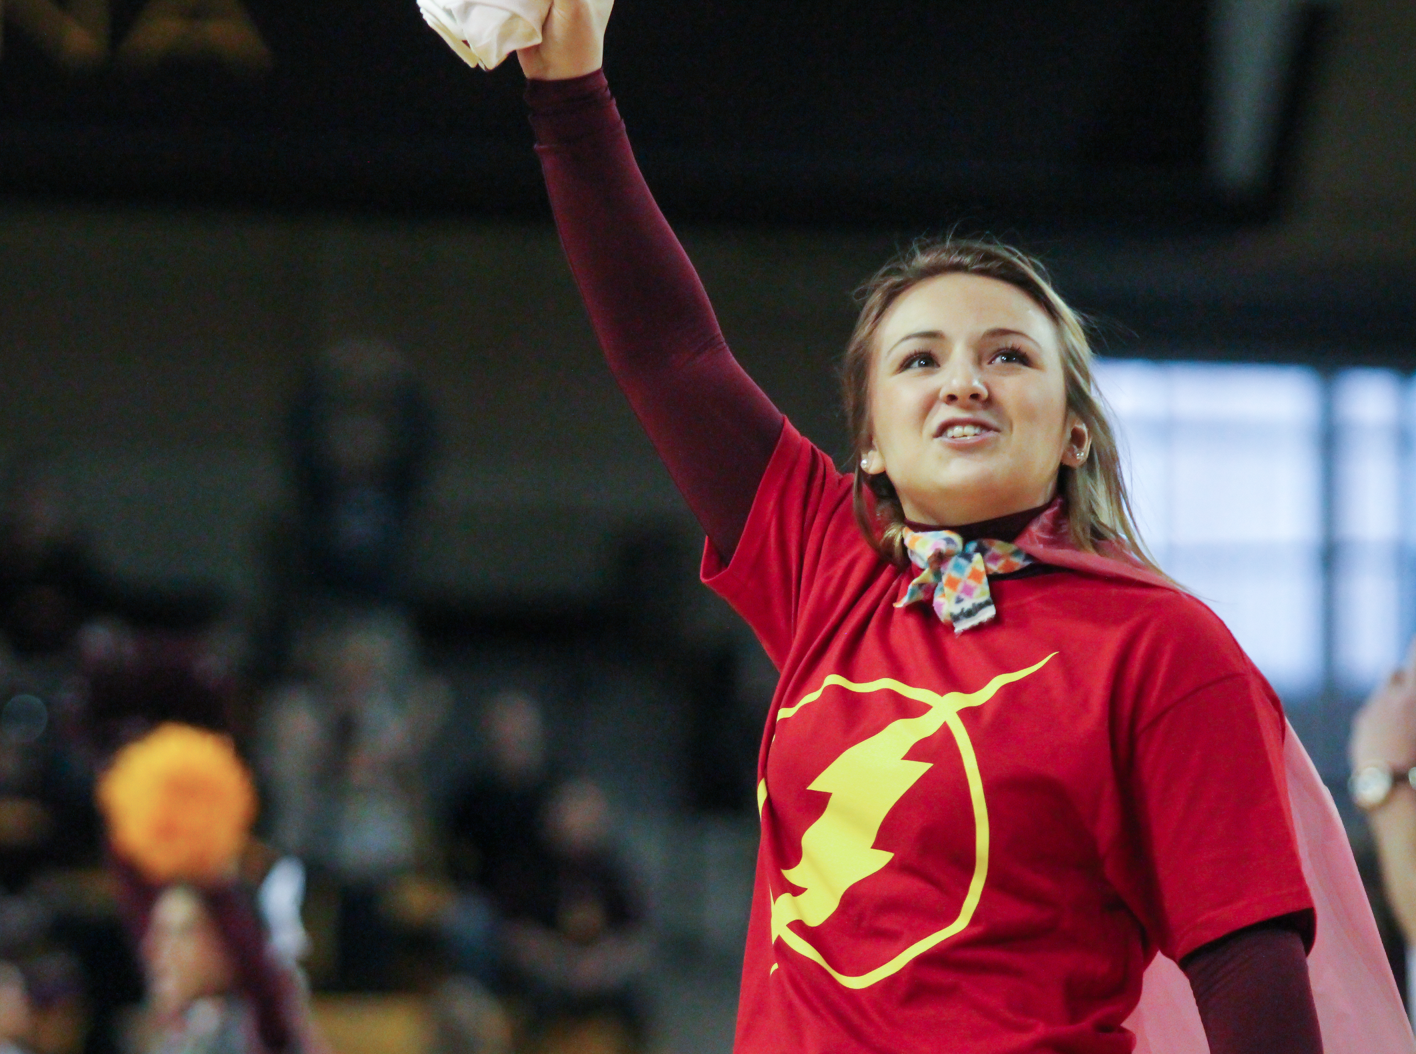 CMU cheerleader Taylor Fischer wears a Flash T-shirt during Superhero day at McGurick Arena on Saturday, Feb. 20.